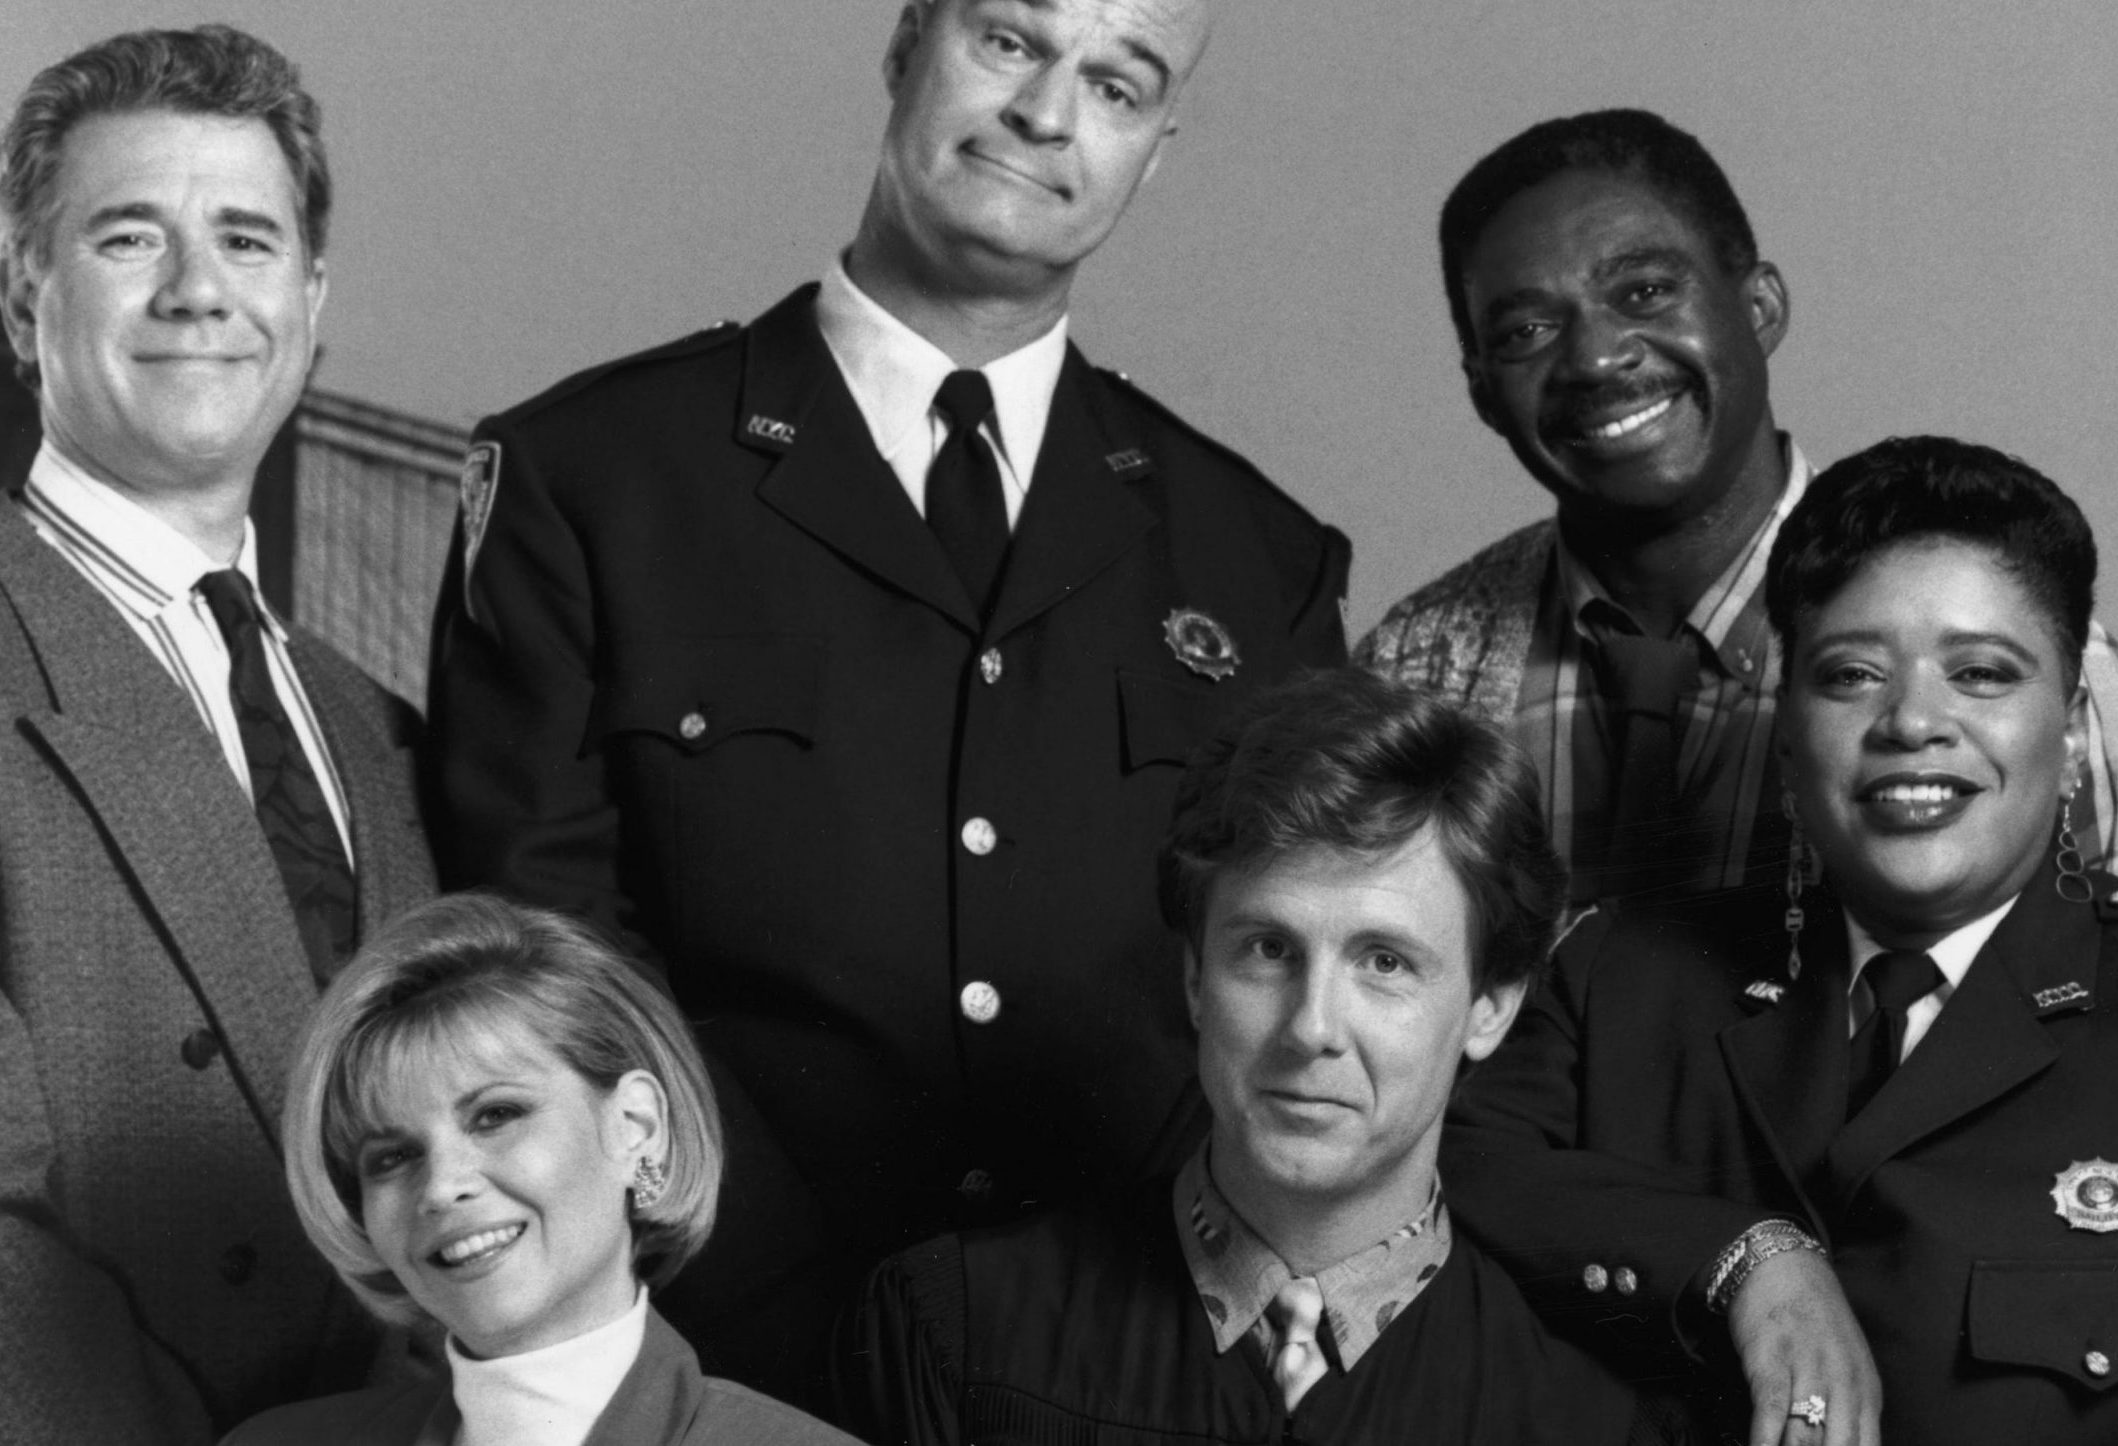 636595026128452362 D NIGHT COURT TV 27 13252875 scaled e1607592020642 20 Things You Probably Didn't Know About Night Court